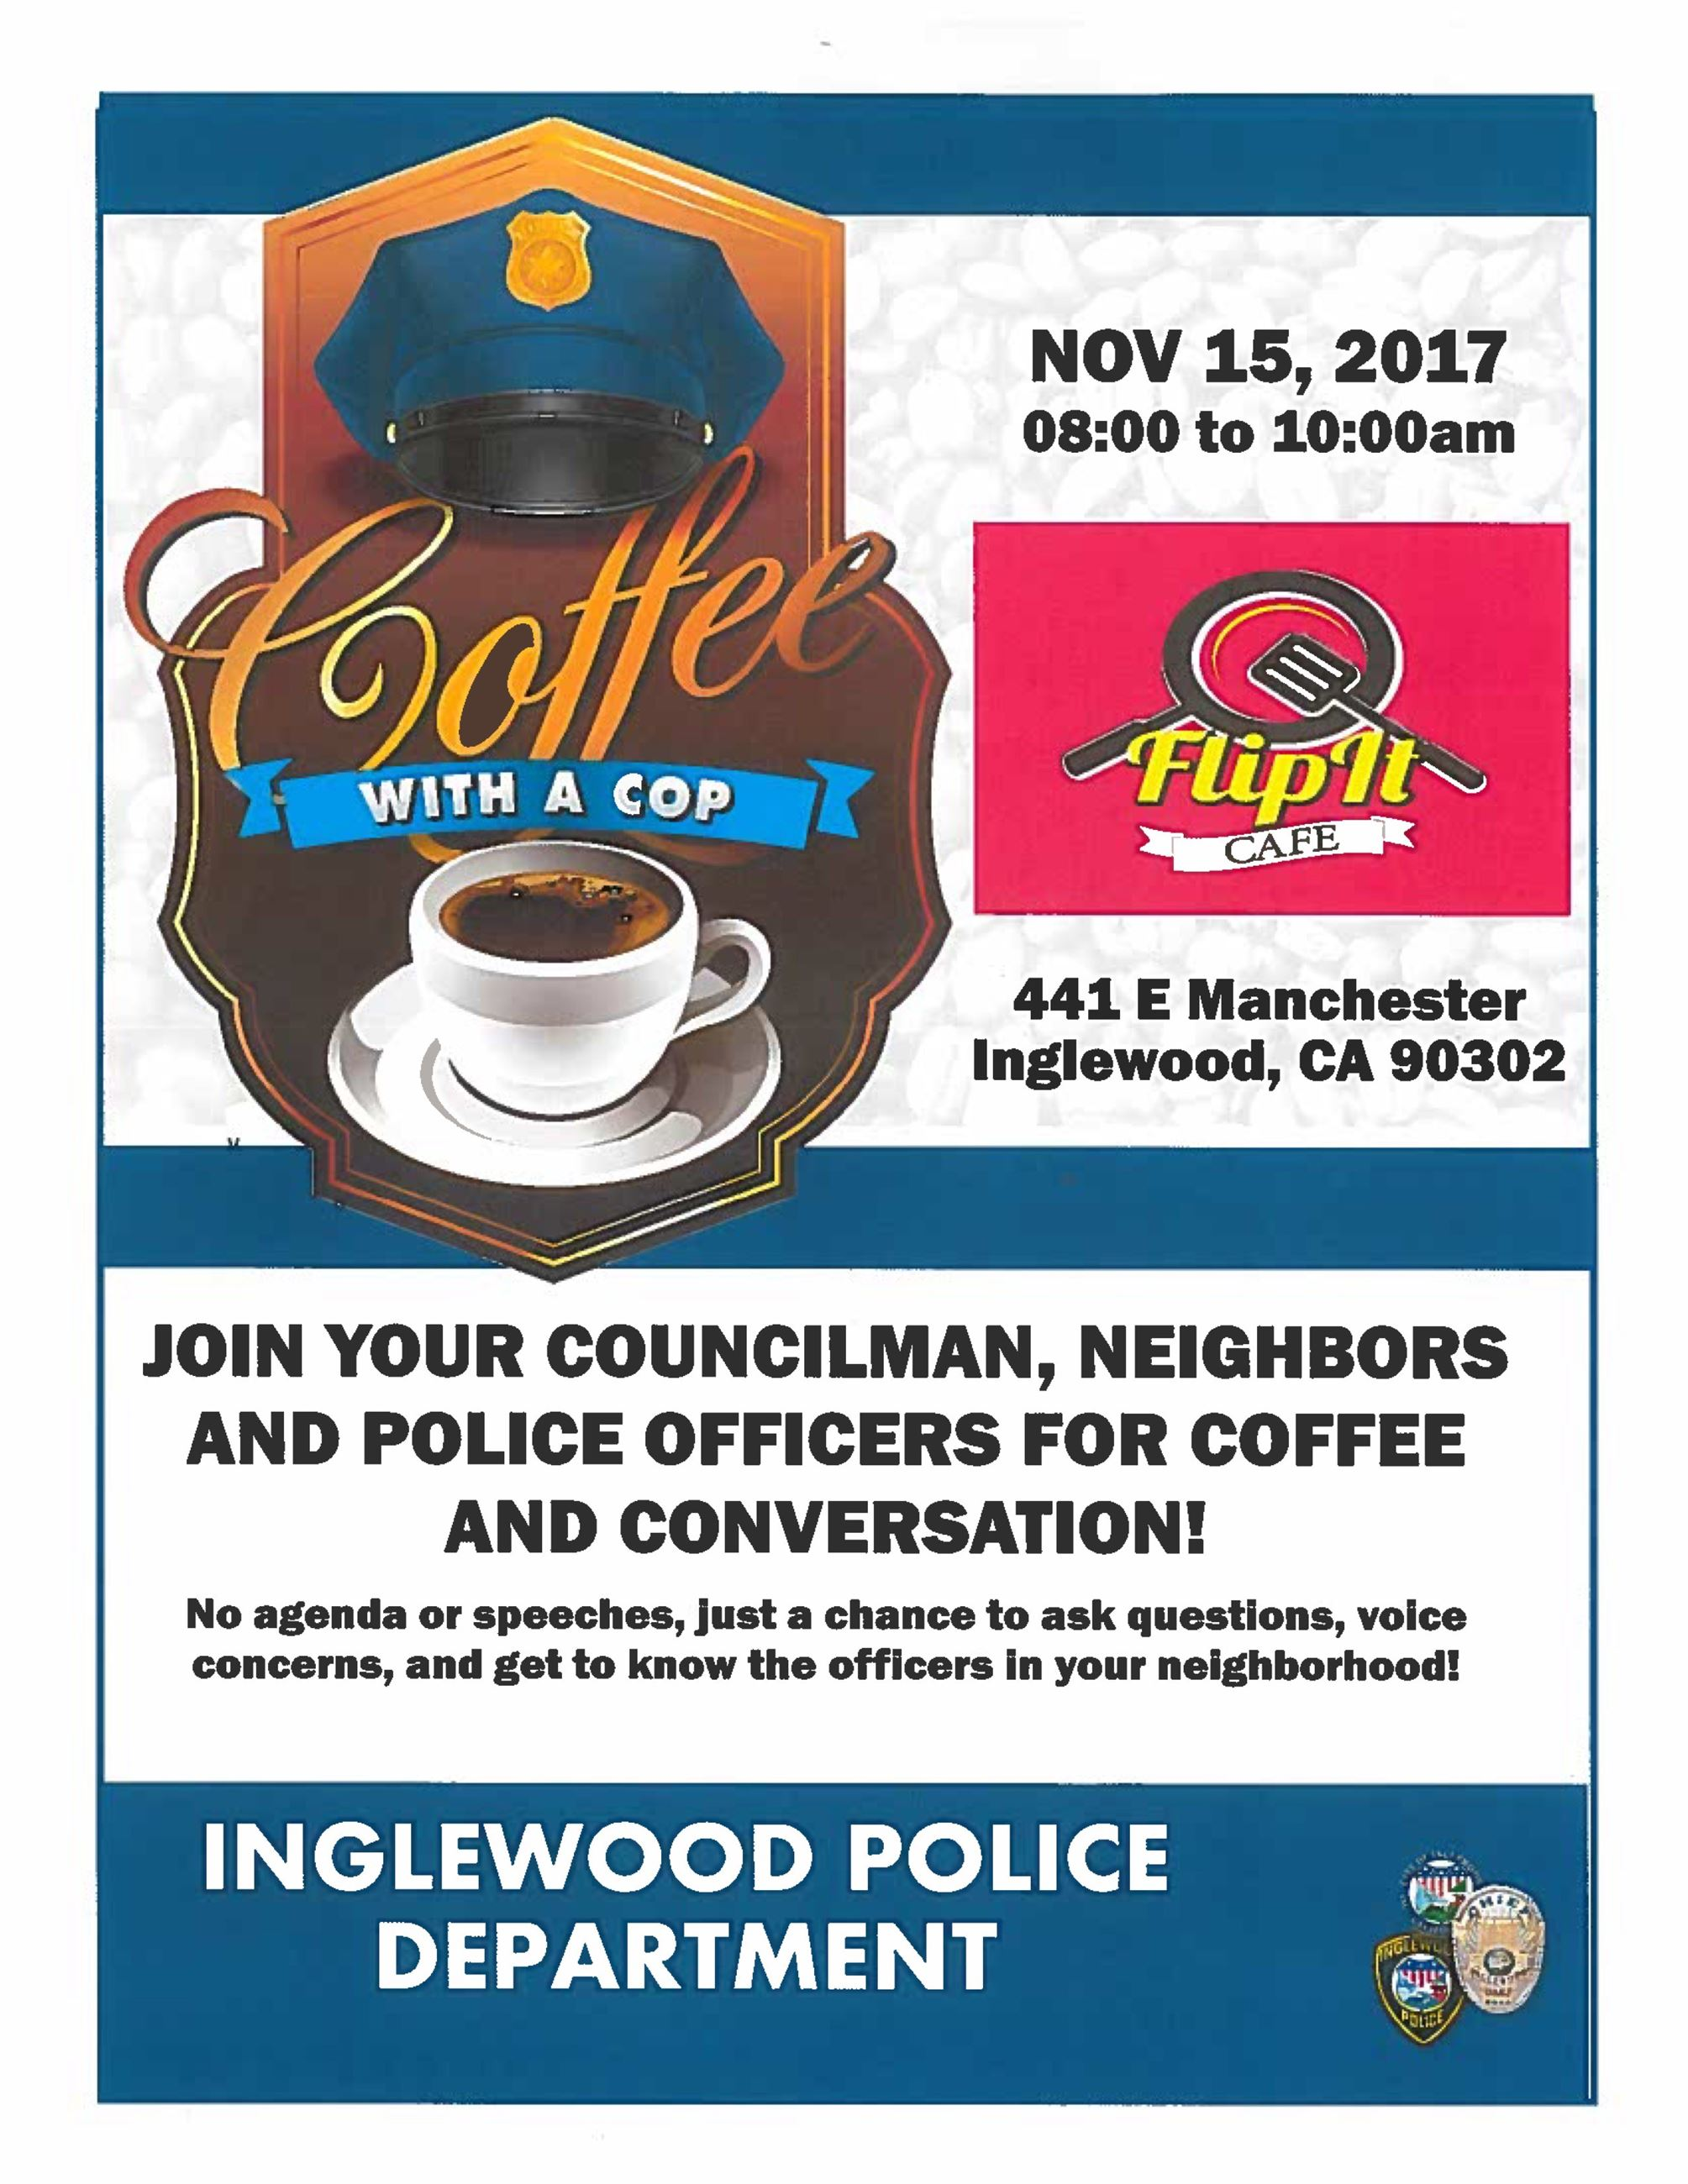 Coffee with a Cop Flip it Cafe